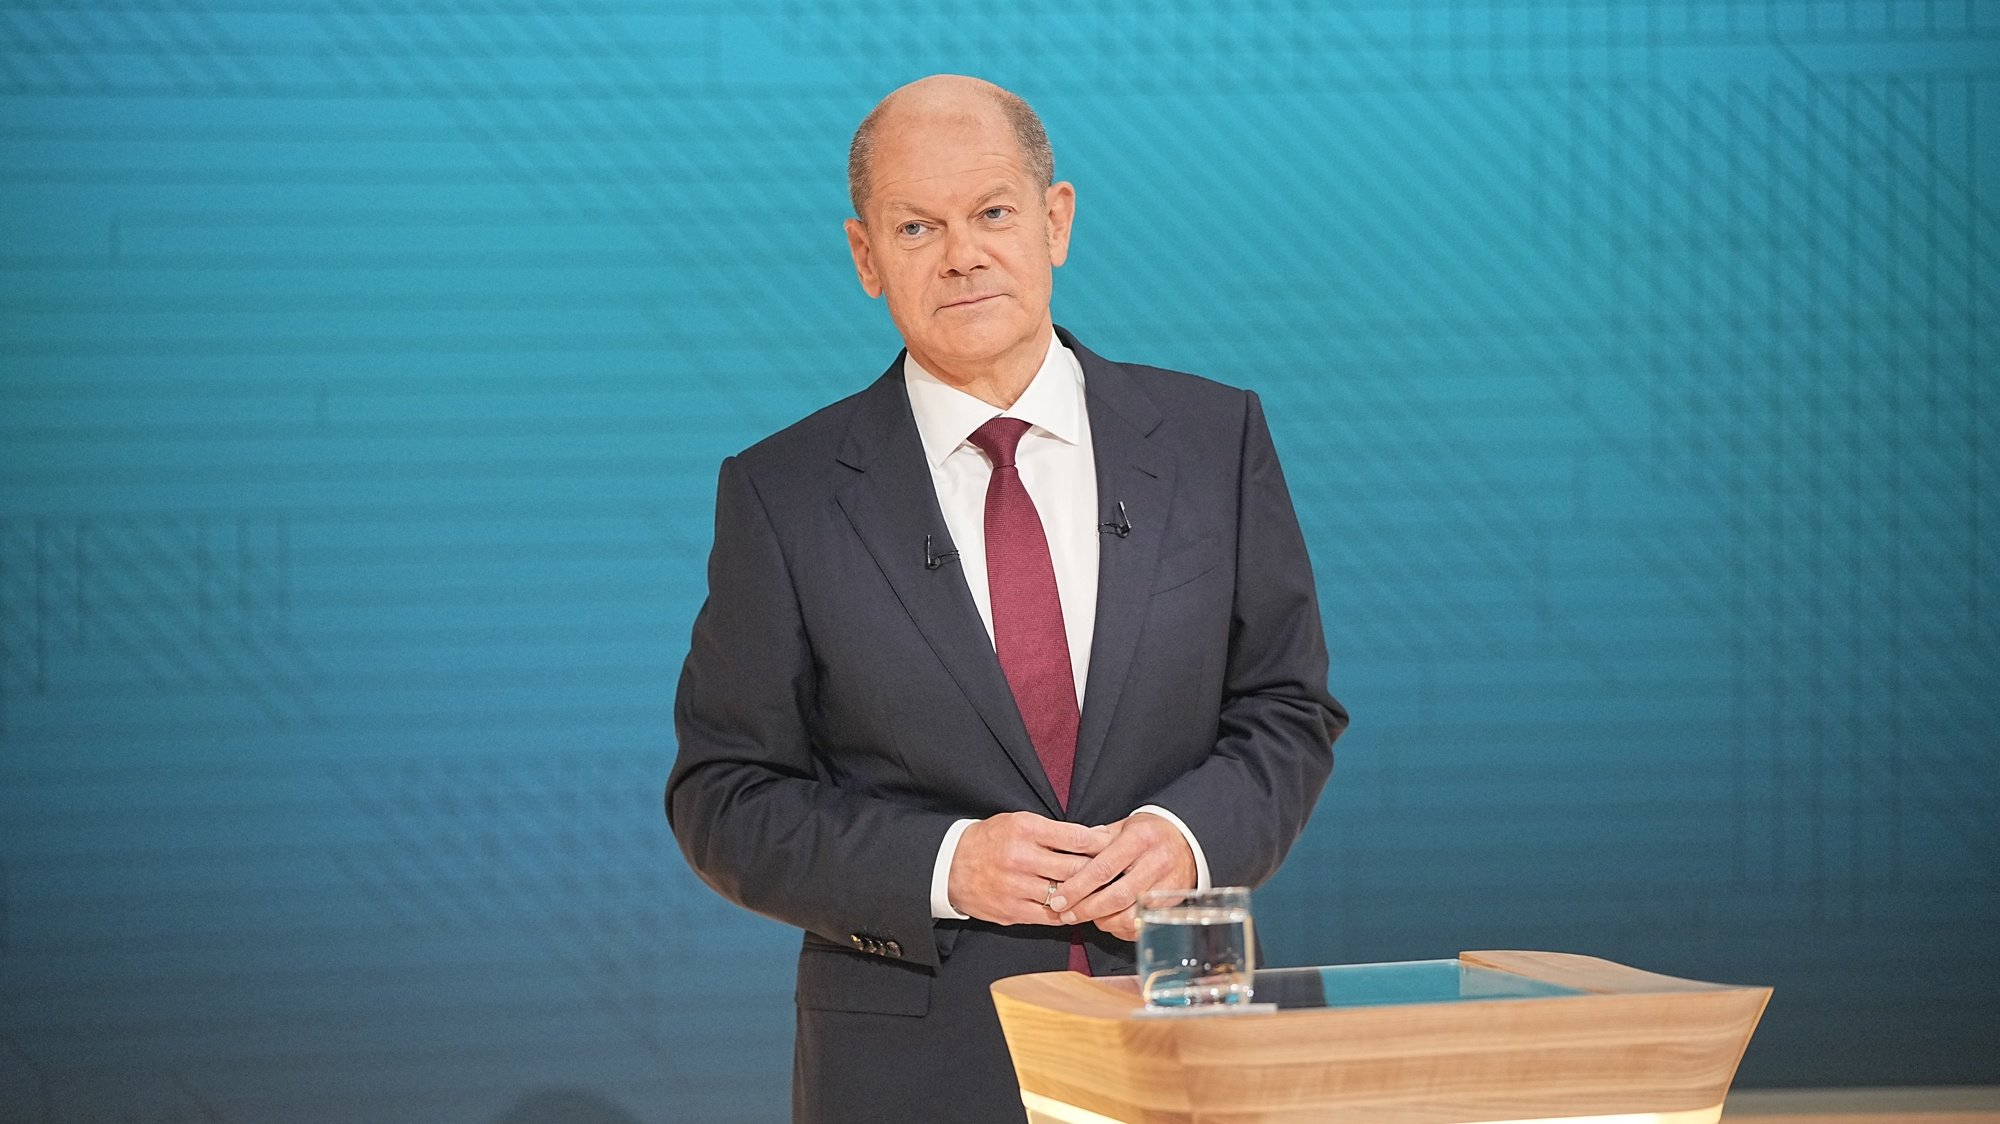 epa09464152 German Minister of Finance and Social Democratic Party (SPD) top candidate for the federal elections Olaf Scholz pictured in the studio during the ARD/ZDF TV station live recording of the TV debate 'The Truel. Three-way fight for the chancellorship' ('Das Triell. Dreikampf ums Kanzleramt') in Berlin, Germany, 12 September 2021. For the second time prior to the general elections on 26 September 2021, the three candidates of Greens, Christian Democrats and Social Democrats, meet in a 'truel', for a live TV debate in the evening of 12 September 2021.  EPA/Michael Kappeler / POOL